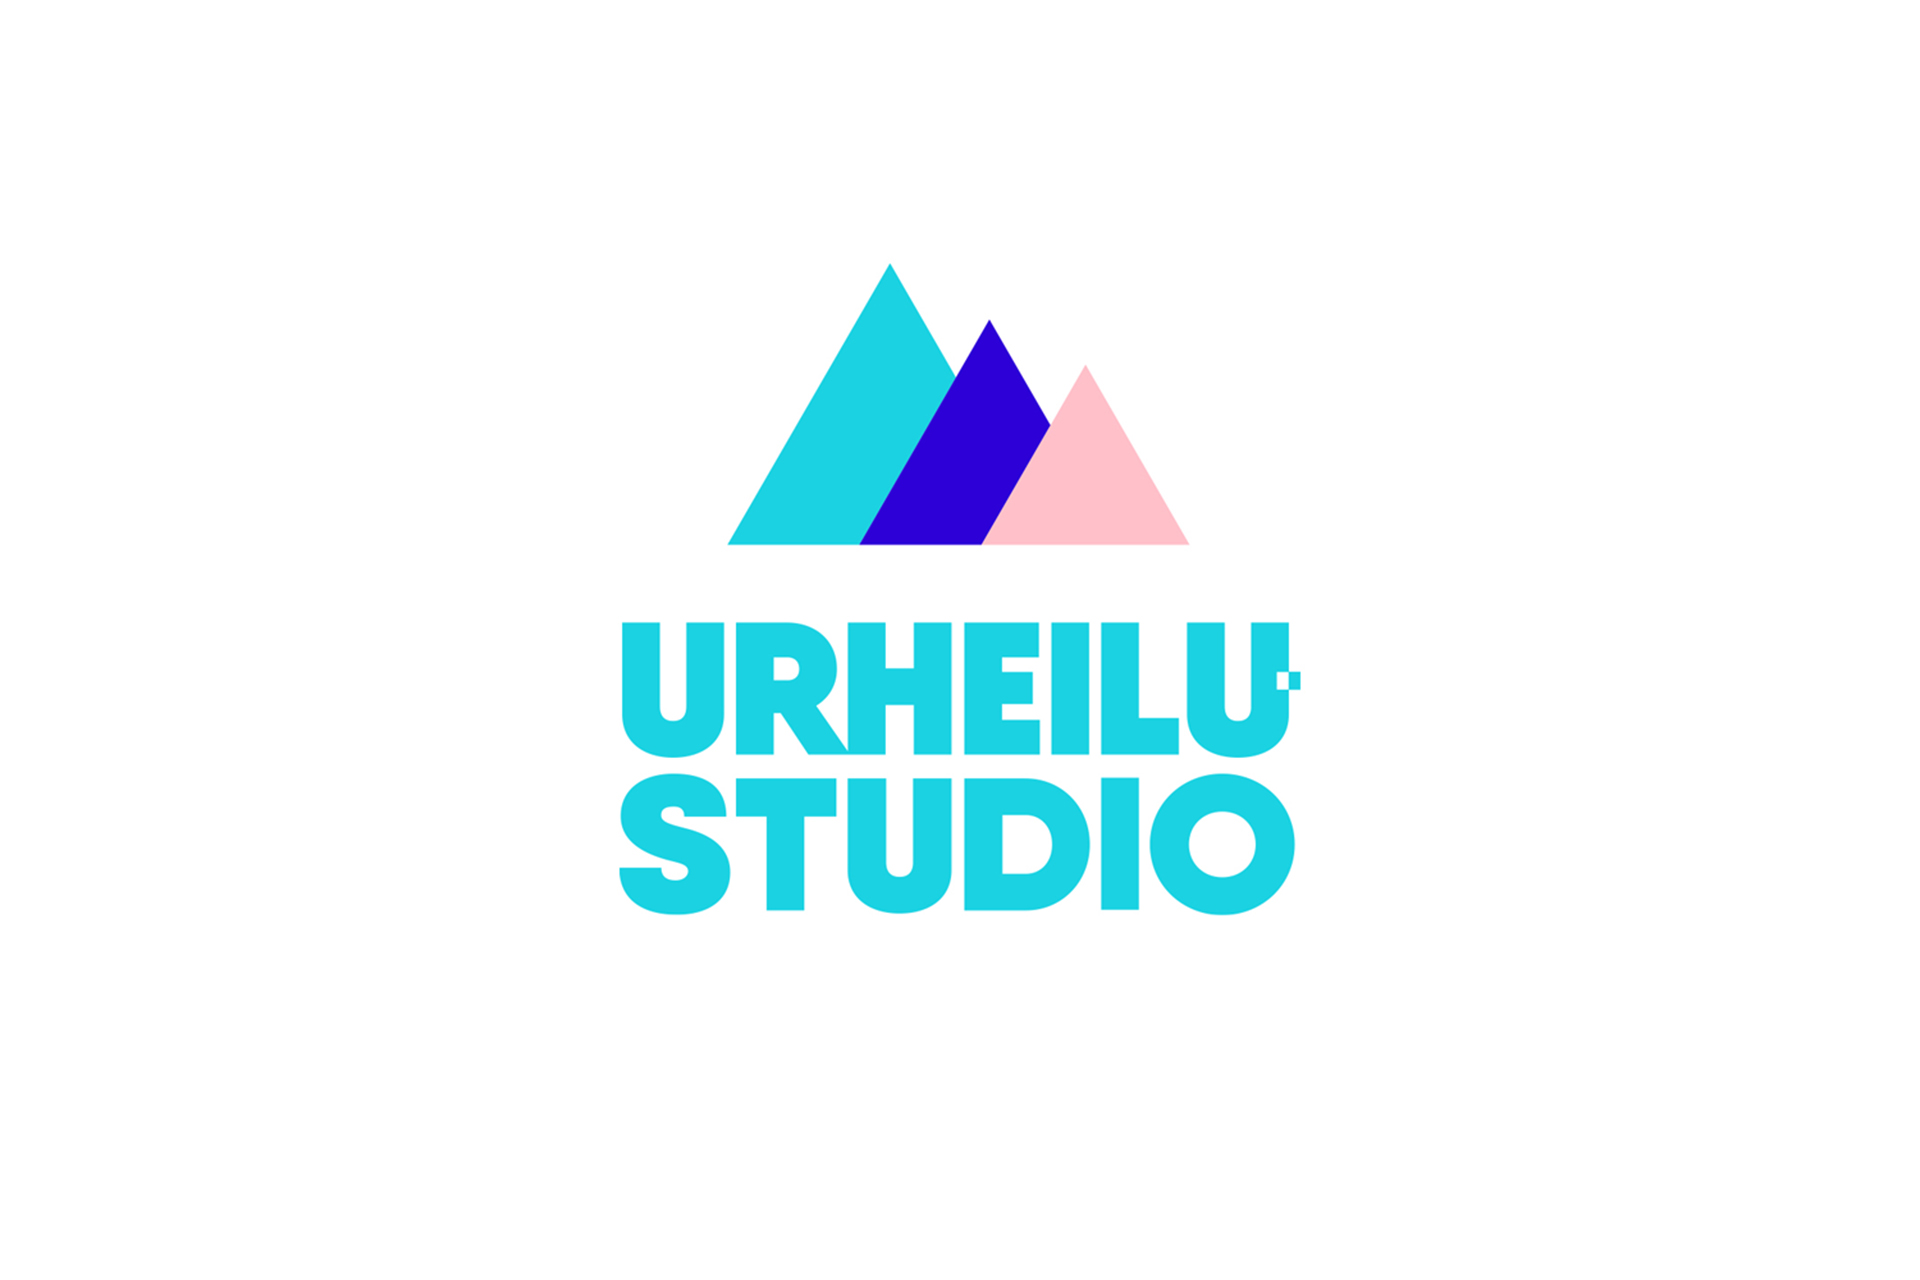 Urheilustudio logo with icon, 3-color